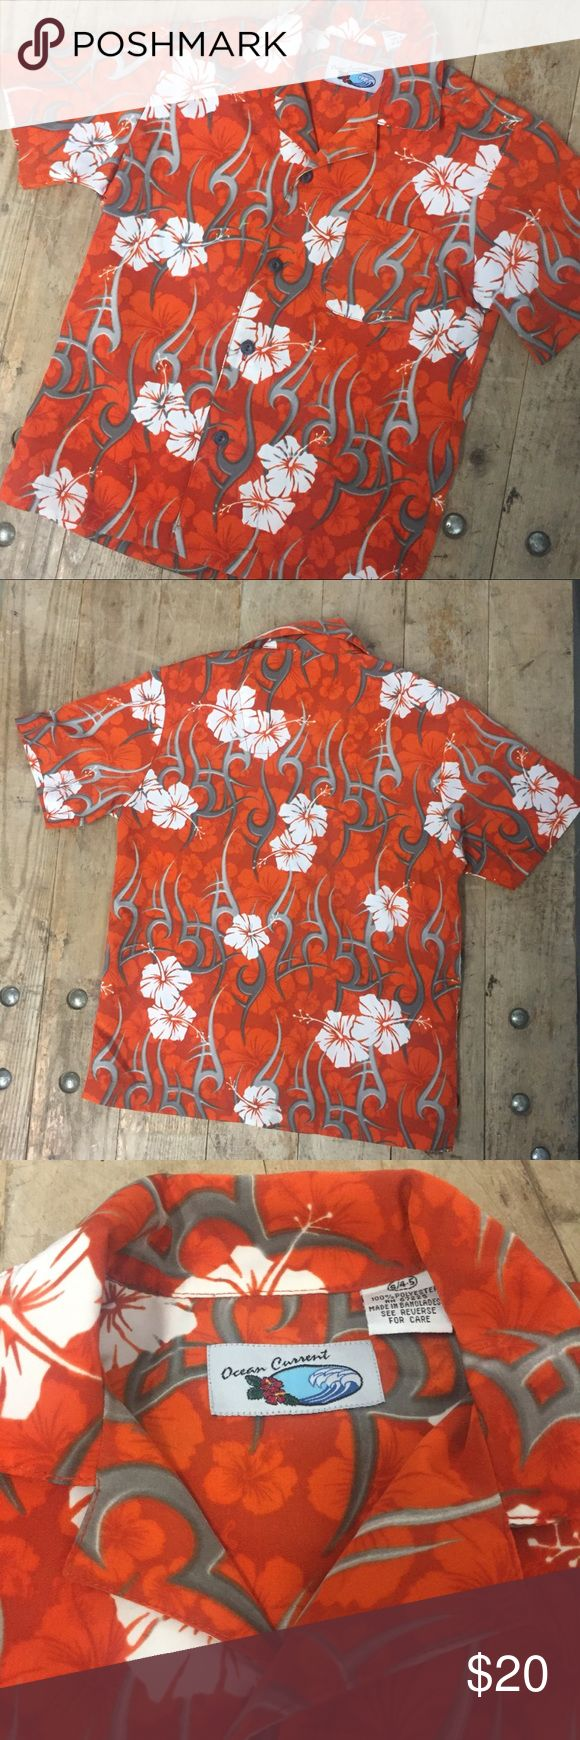 Orange Ocean Current Boys Hawaiian Shirt Boys  polyester hibiscus print shirt.  Excellent used condition. Size small 4/5. Ocean Current Shirts & Tops